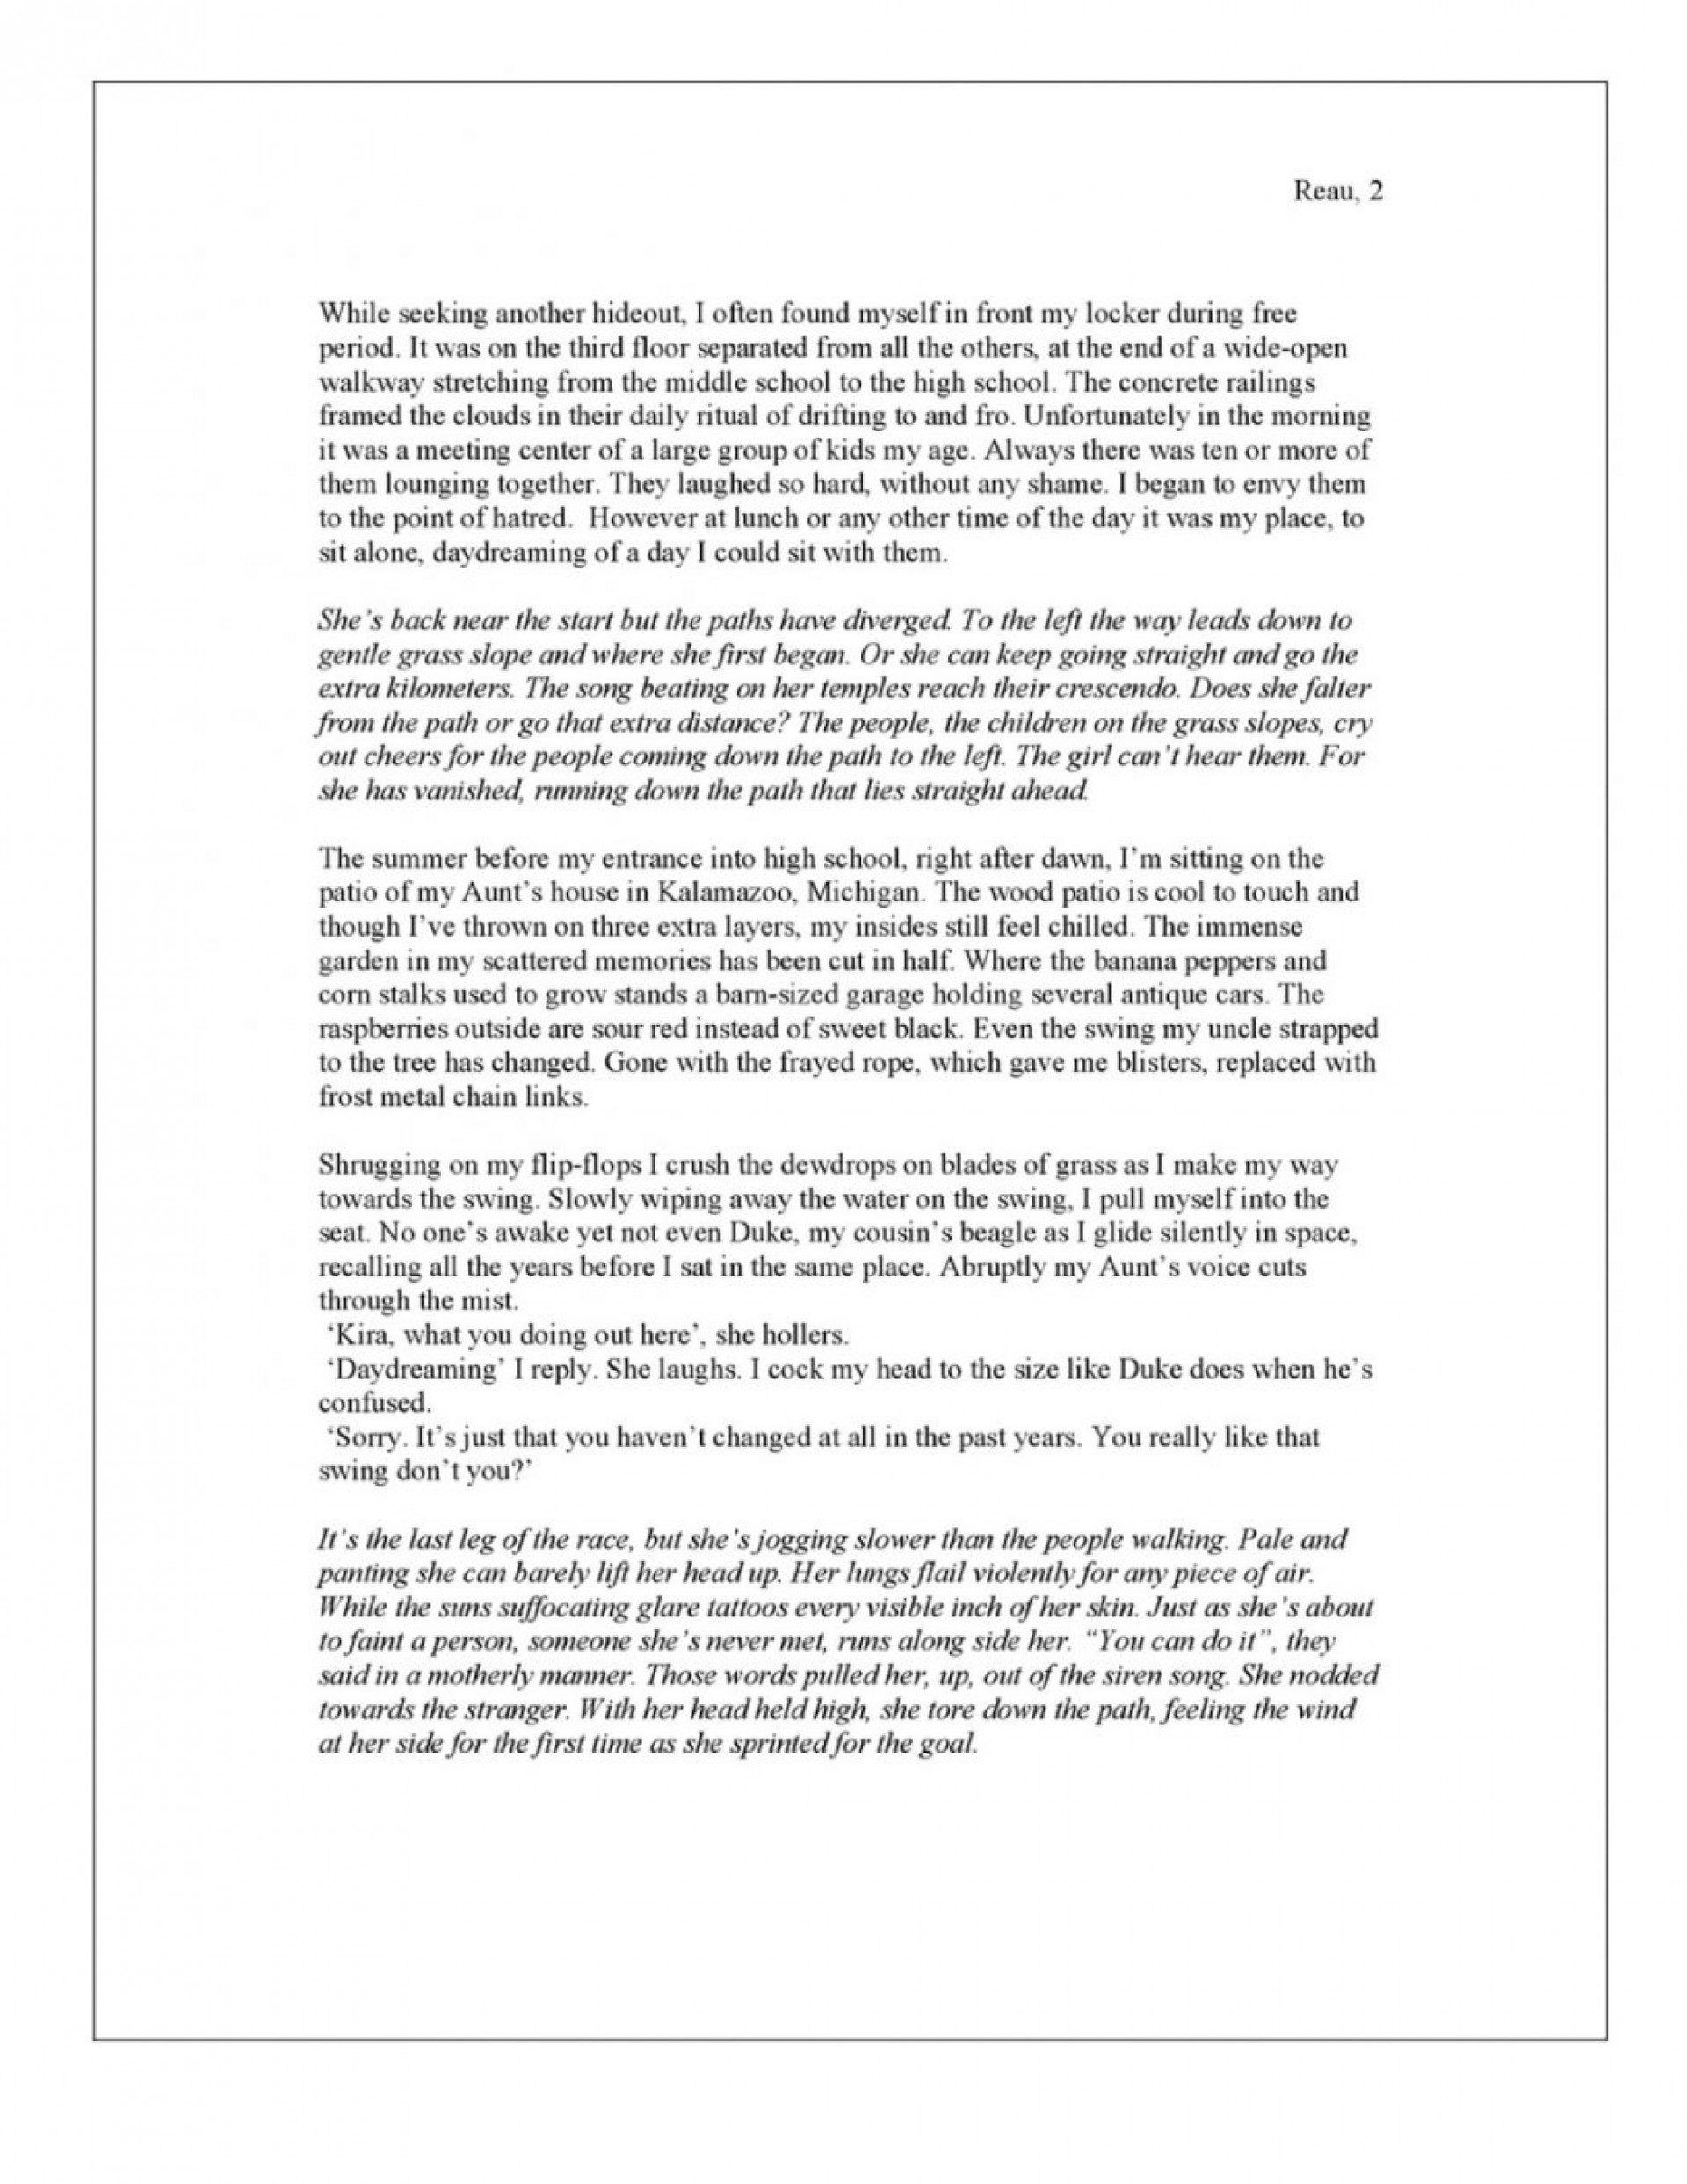 018 Narration Essay Define Narrative Definition Of The Life A Misant How To Write My Help Me 1048x1357 Fascinating Narrative/descriptive Writing Term 1920